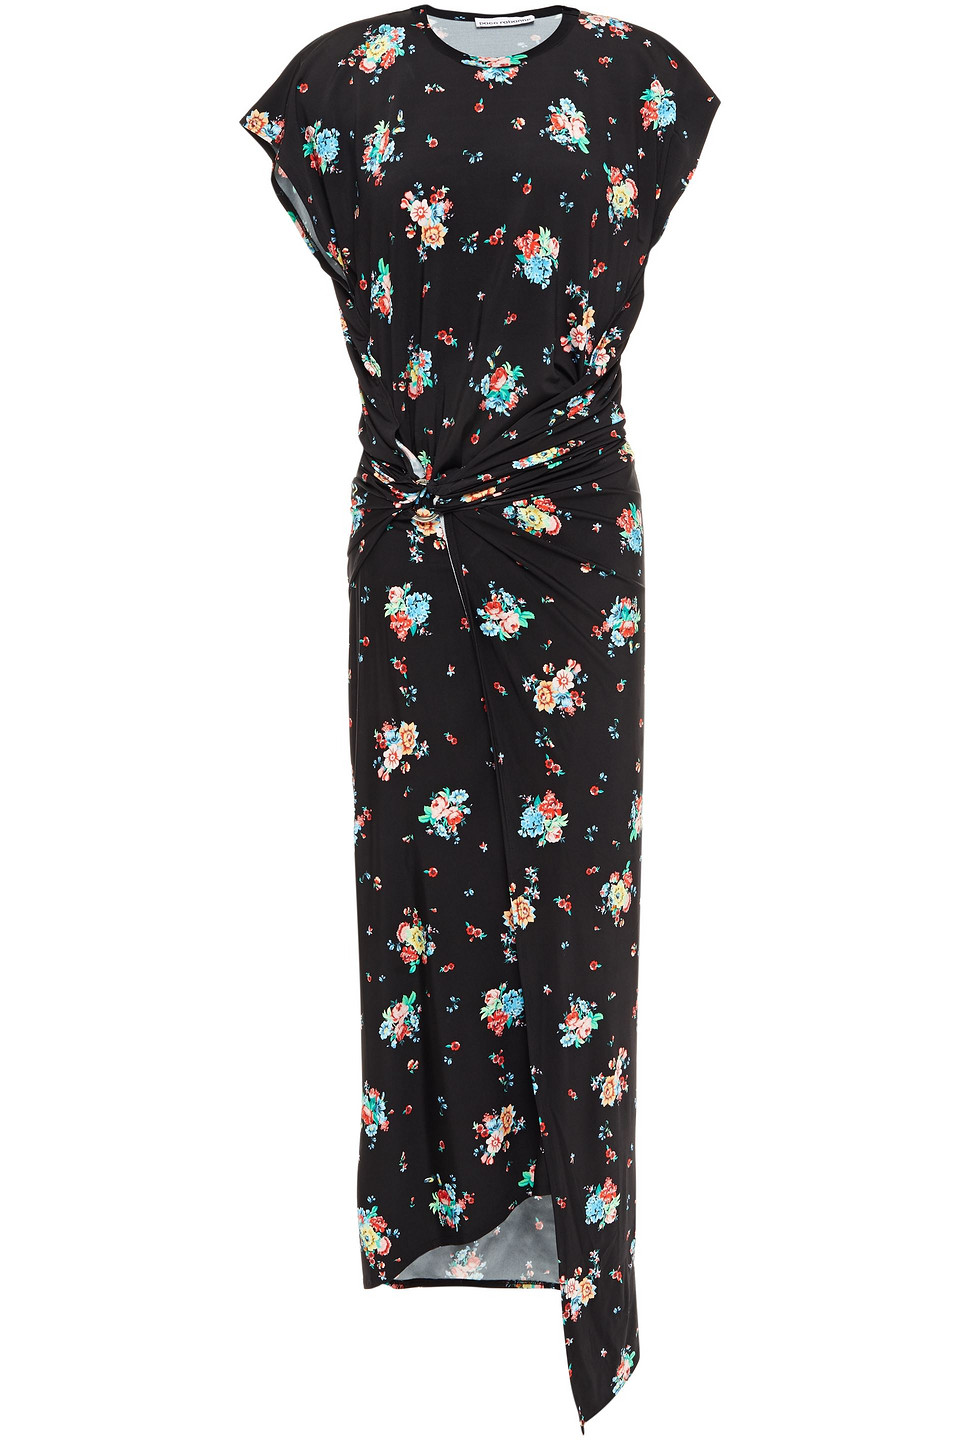 Paco Rabanne | Paco Rabanne Woman Draped Floral-print Stretch-jersey Midi Dress Black | Clouty